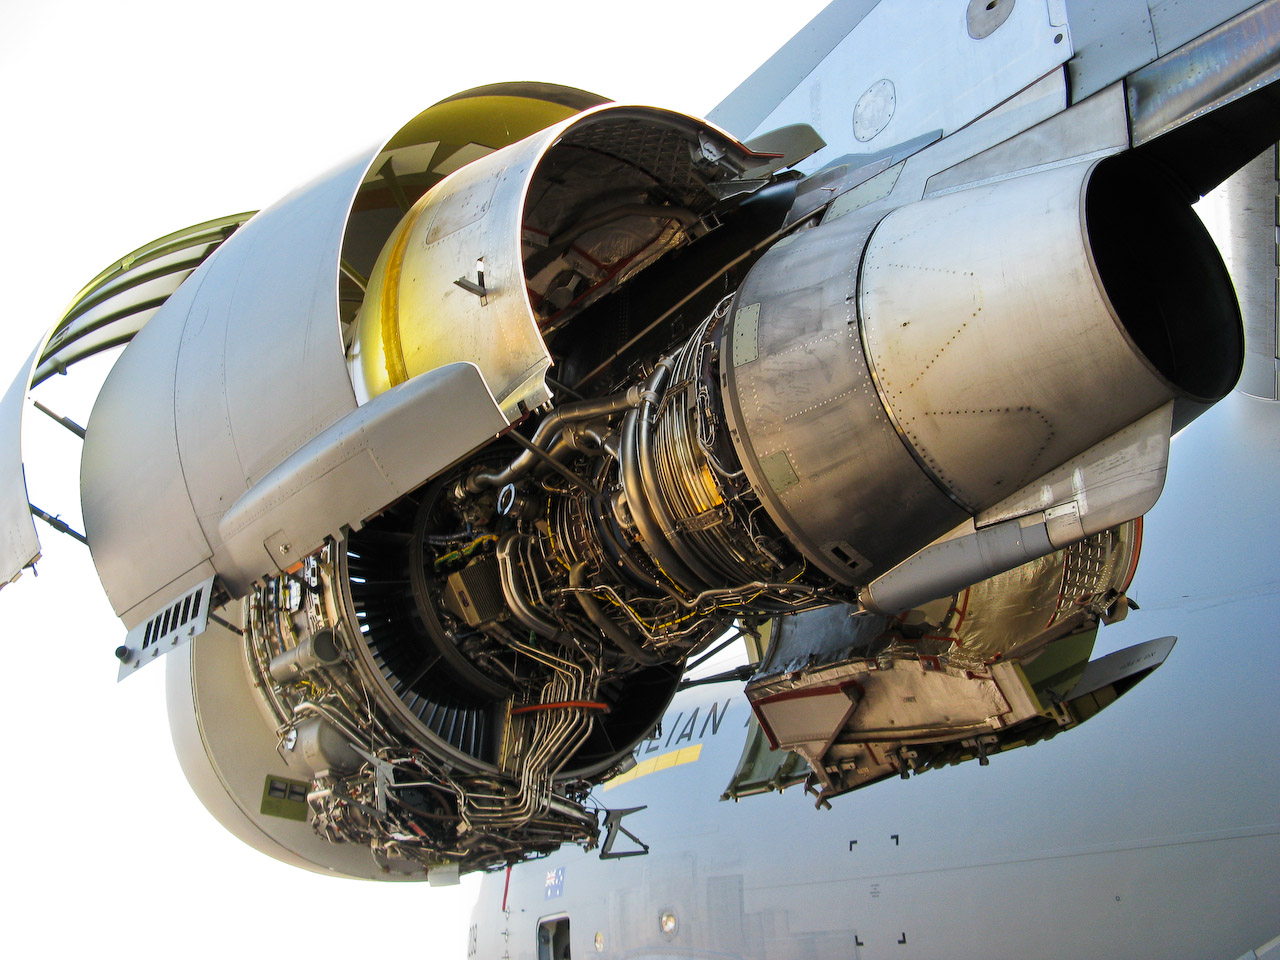 C-17 Engine, C-17 Facts